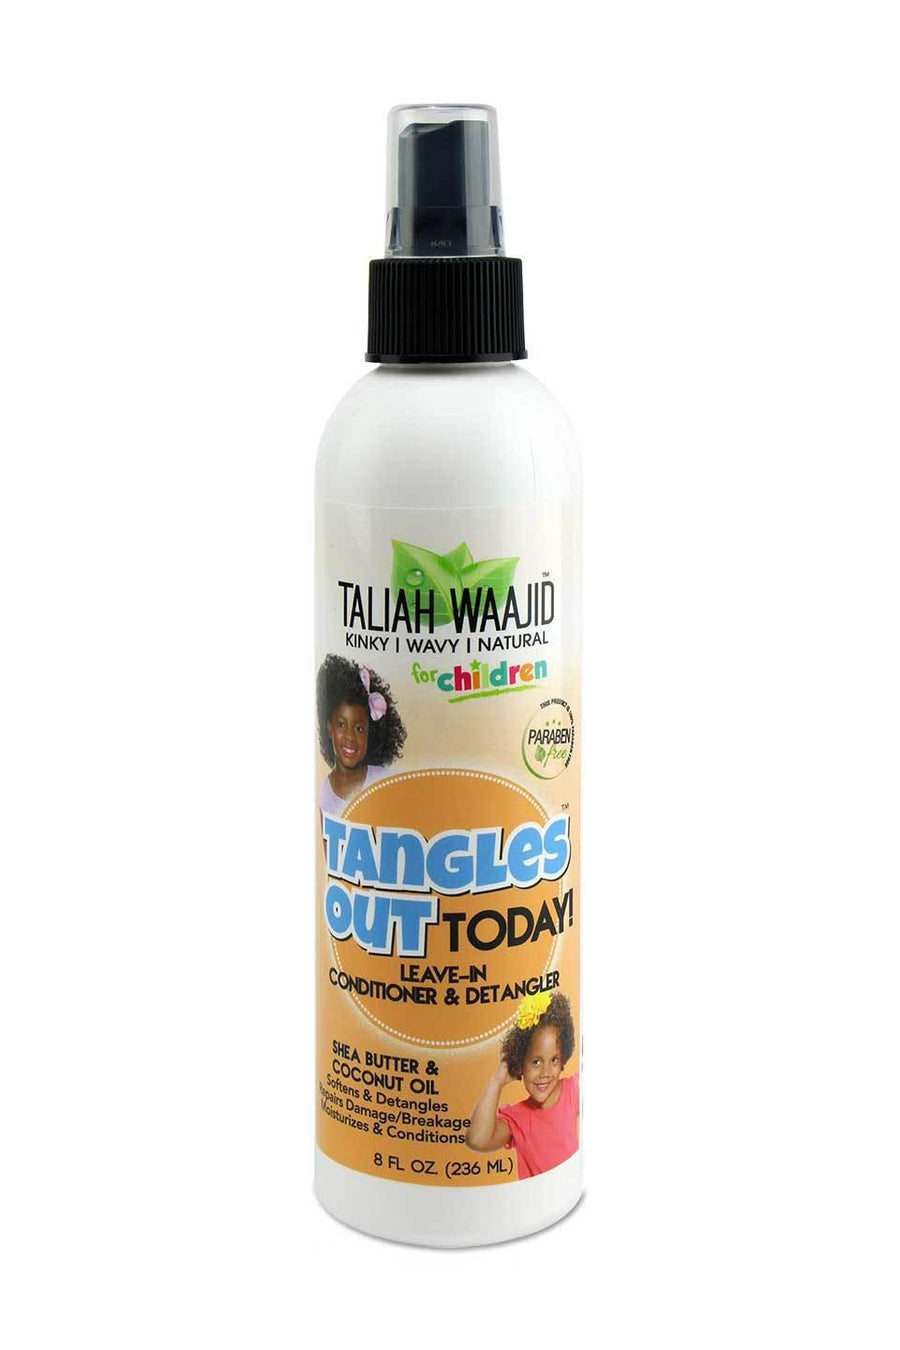 Taliah Waajid Kids Tangles Out Today Leave In Conditioner & Detangler 8 oz